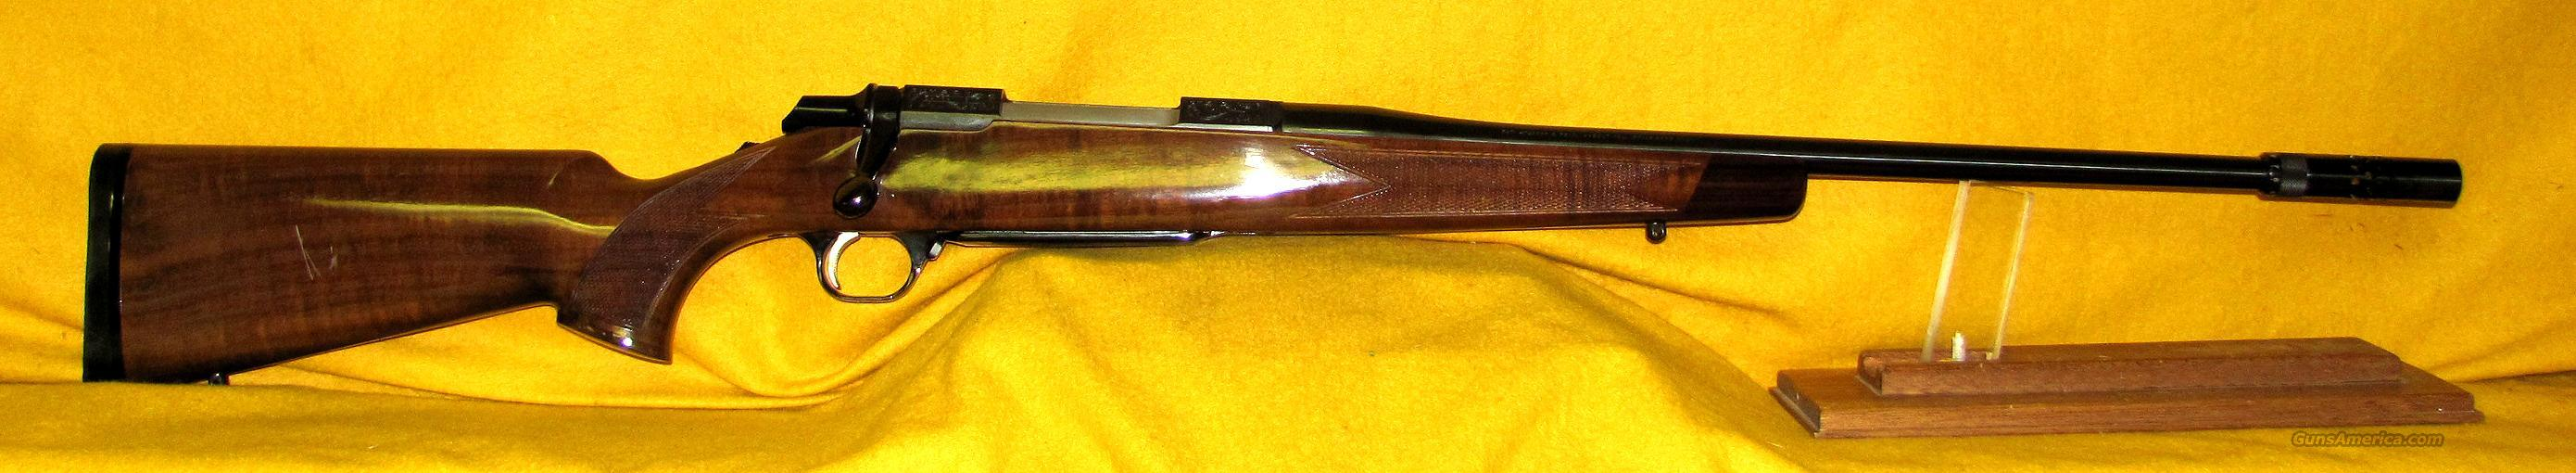 BROWNING MEDALLION  Guns > Rifles > Browning Rifles > Bolt Action > Hunting > Blue